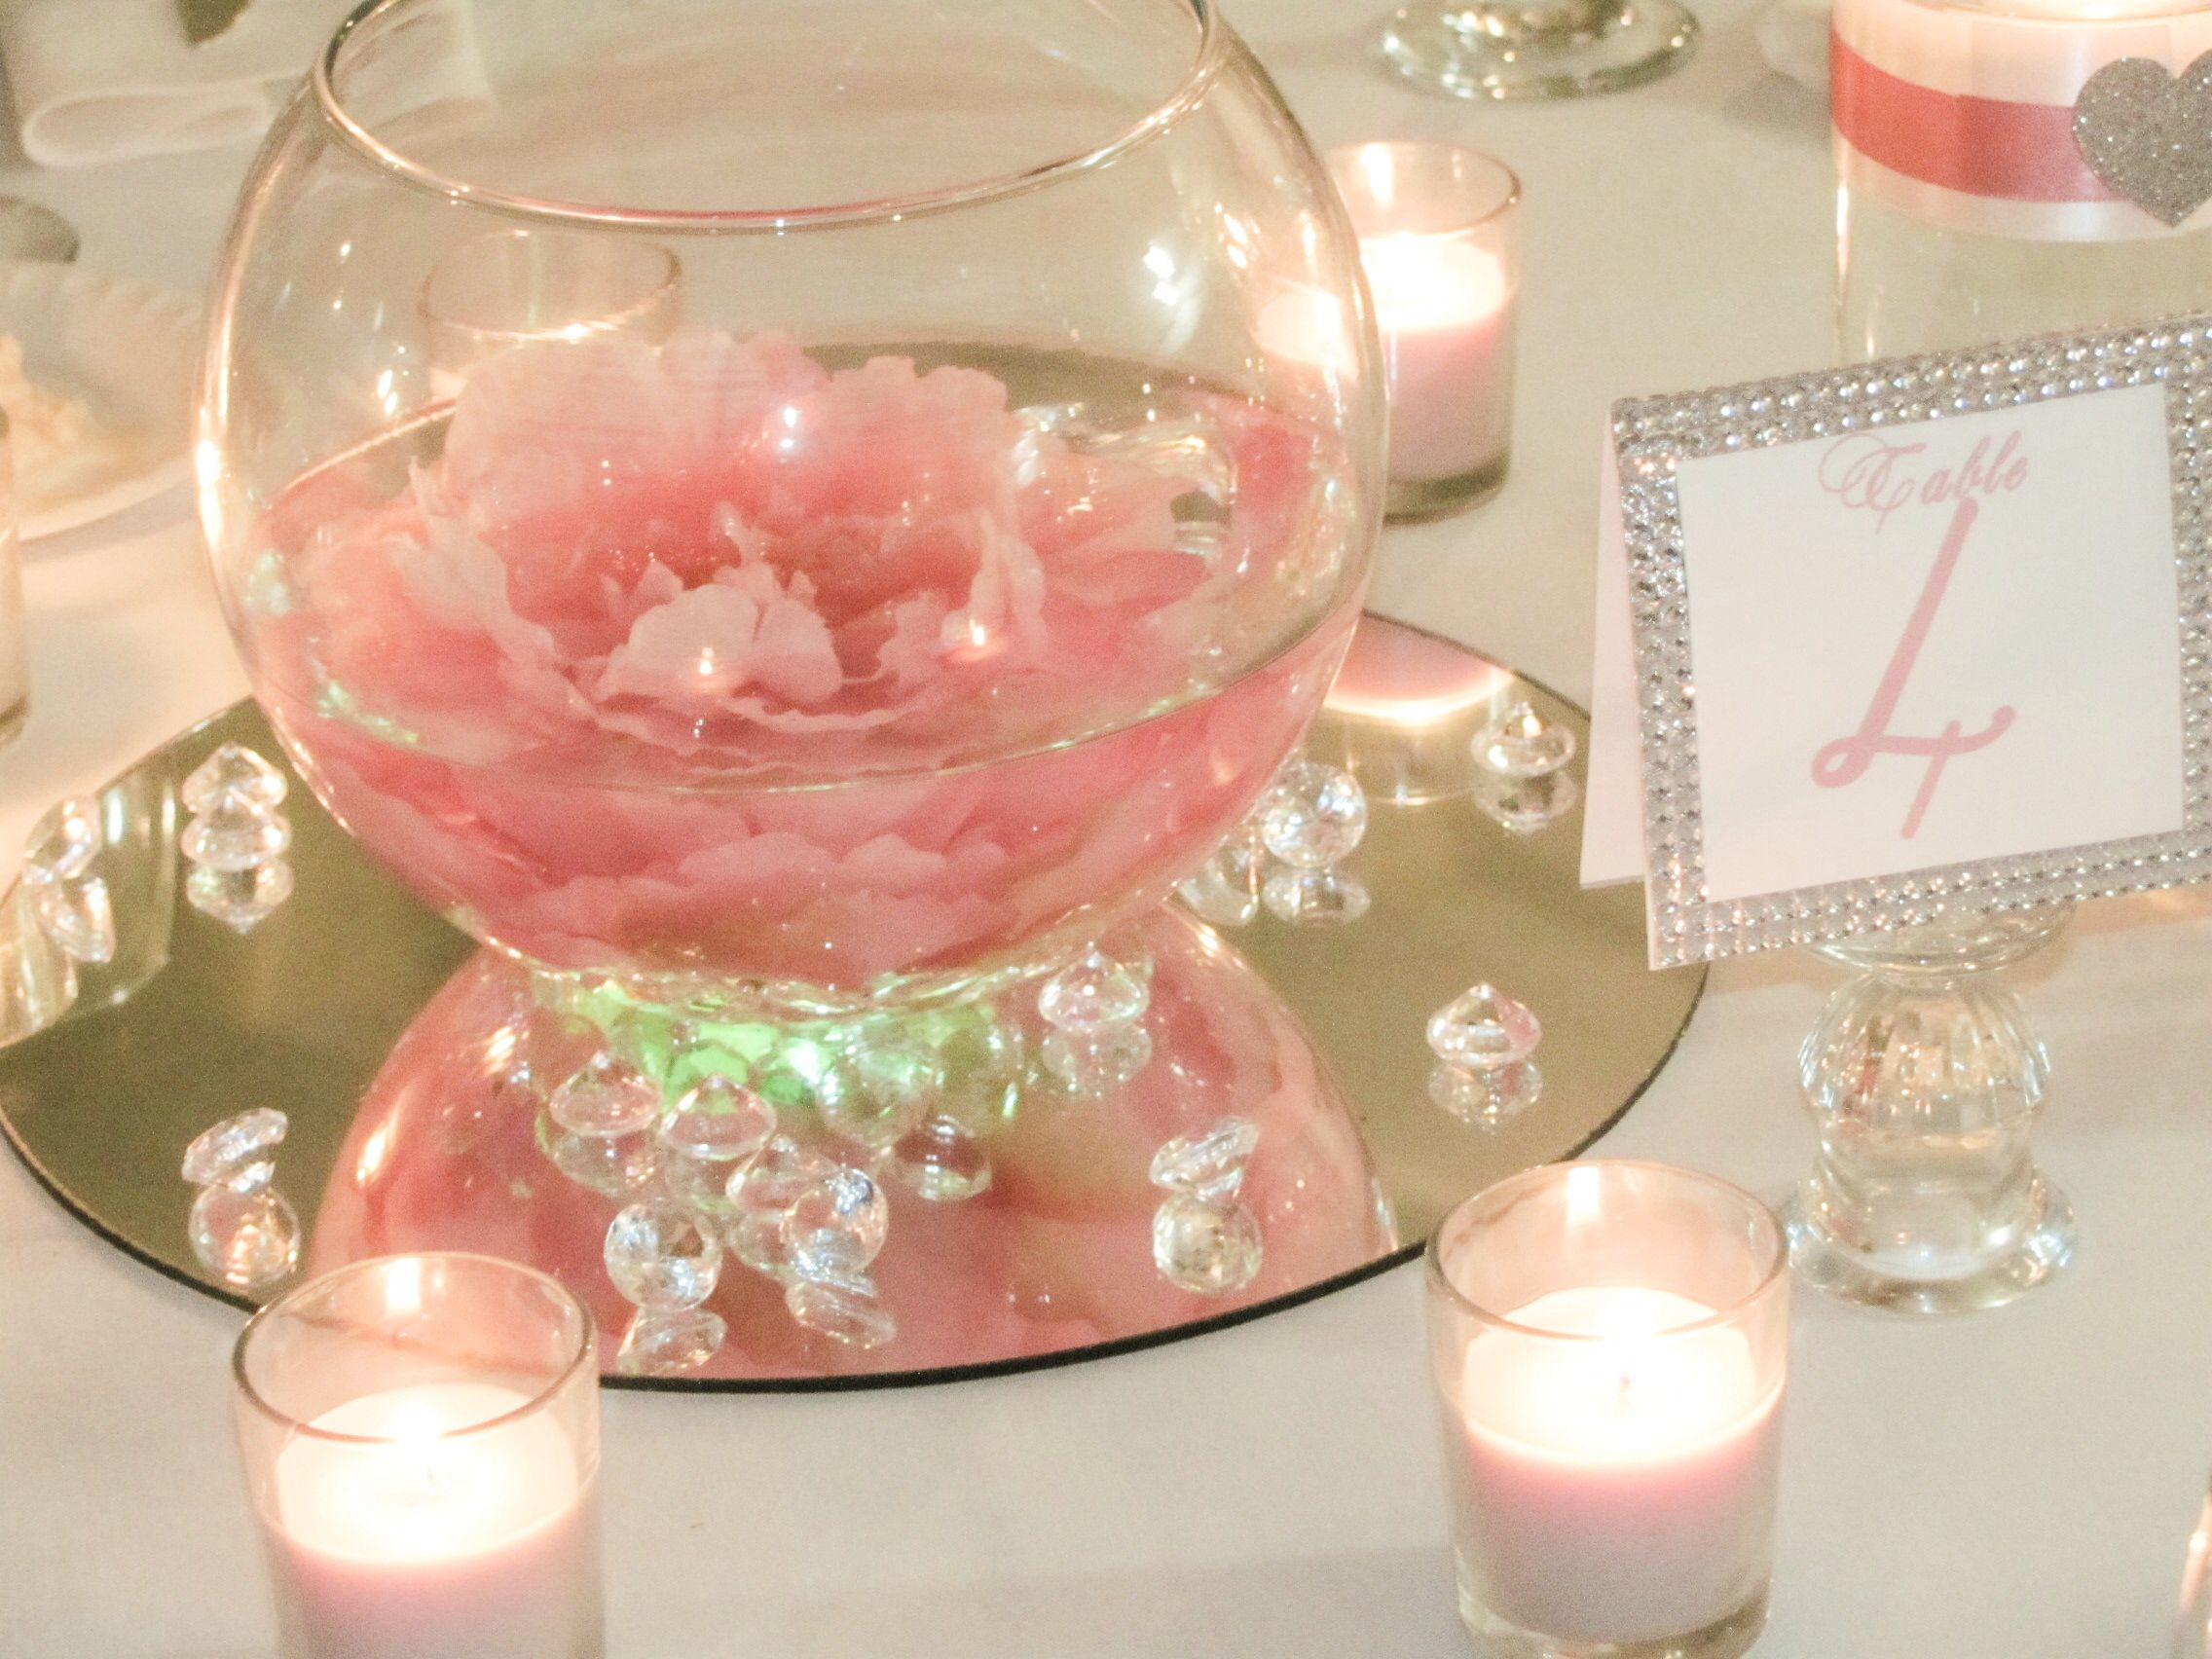 Diy Valentines Centerpiece Simple And Quick Glass Bowls La Or Michaels 12 Wedding Party Table Decorations Mirror Wedding Centerpieces Wedding Centerpieces